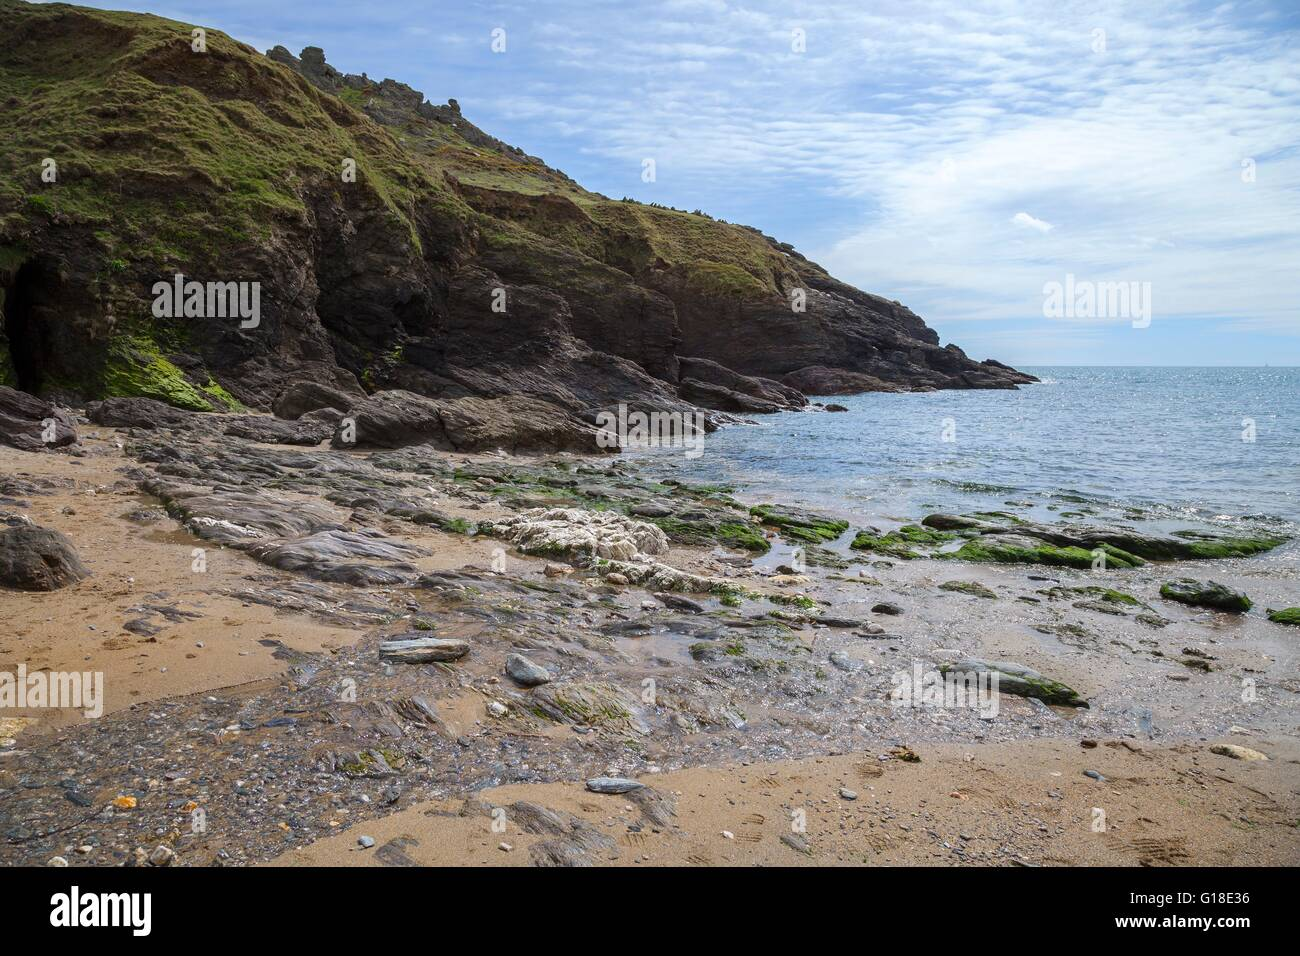 Soar Mill Cove beach, Devon, England. - Stock Image